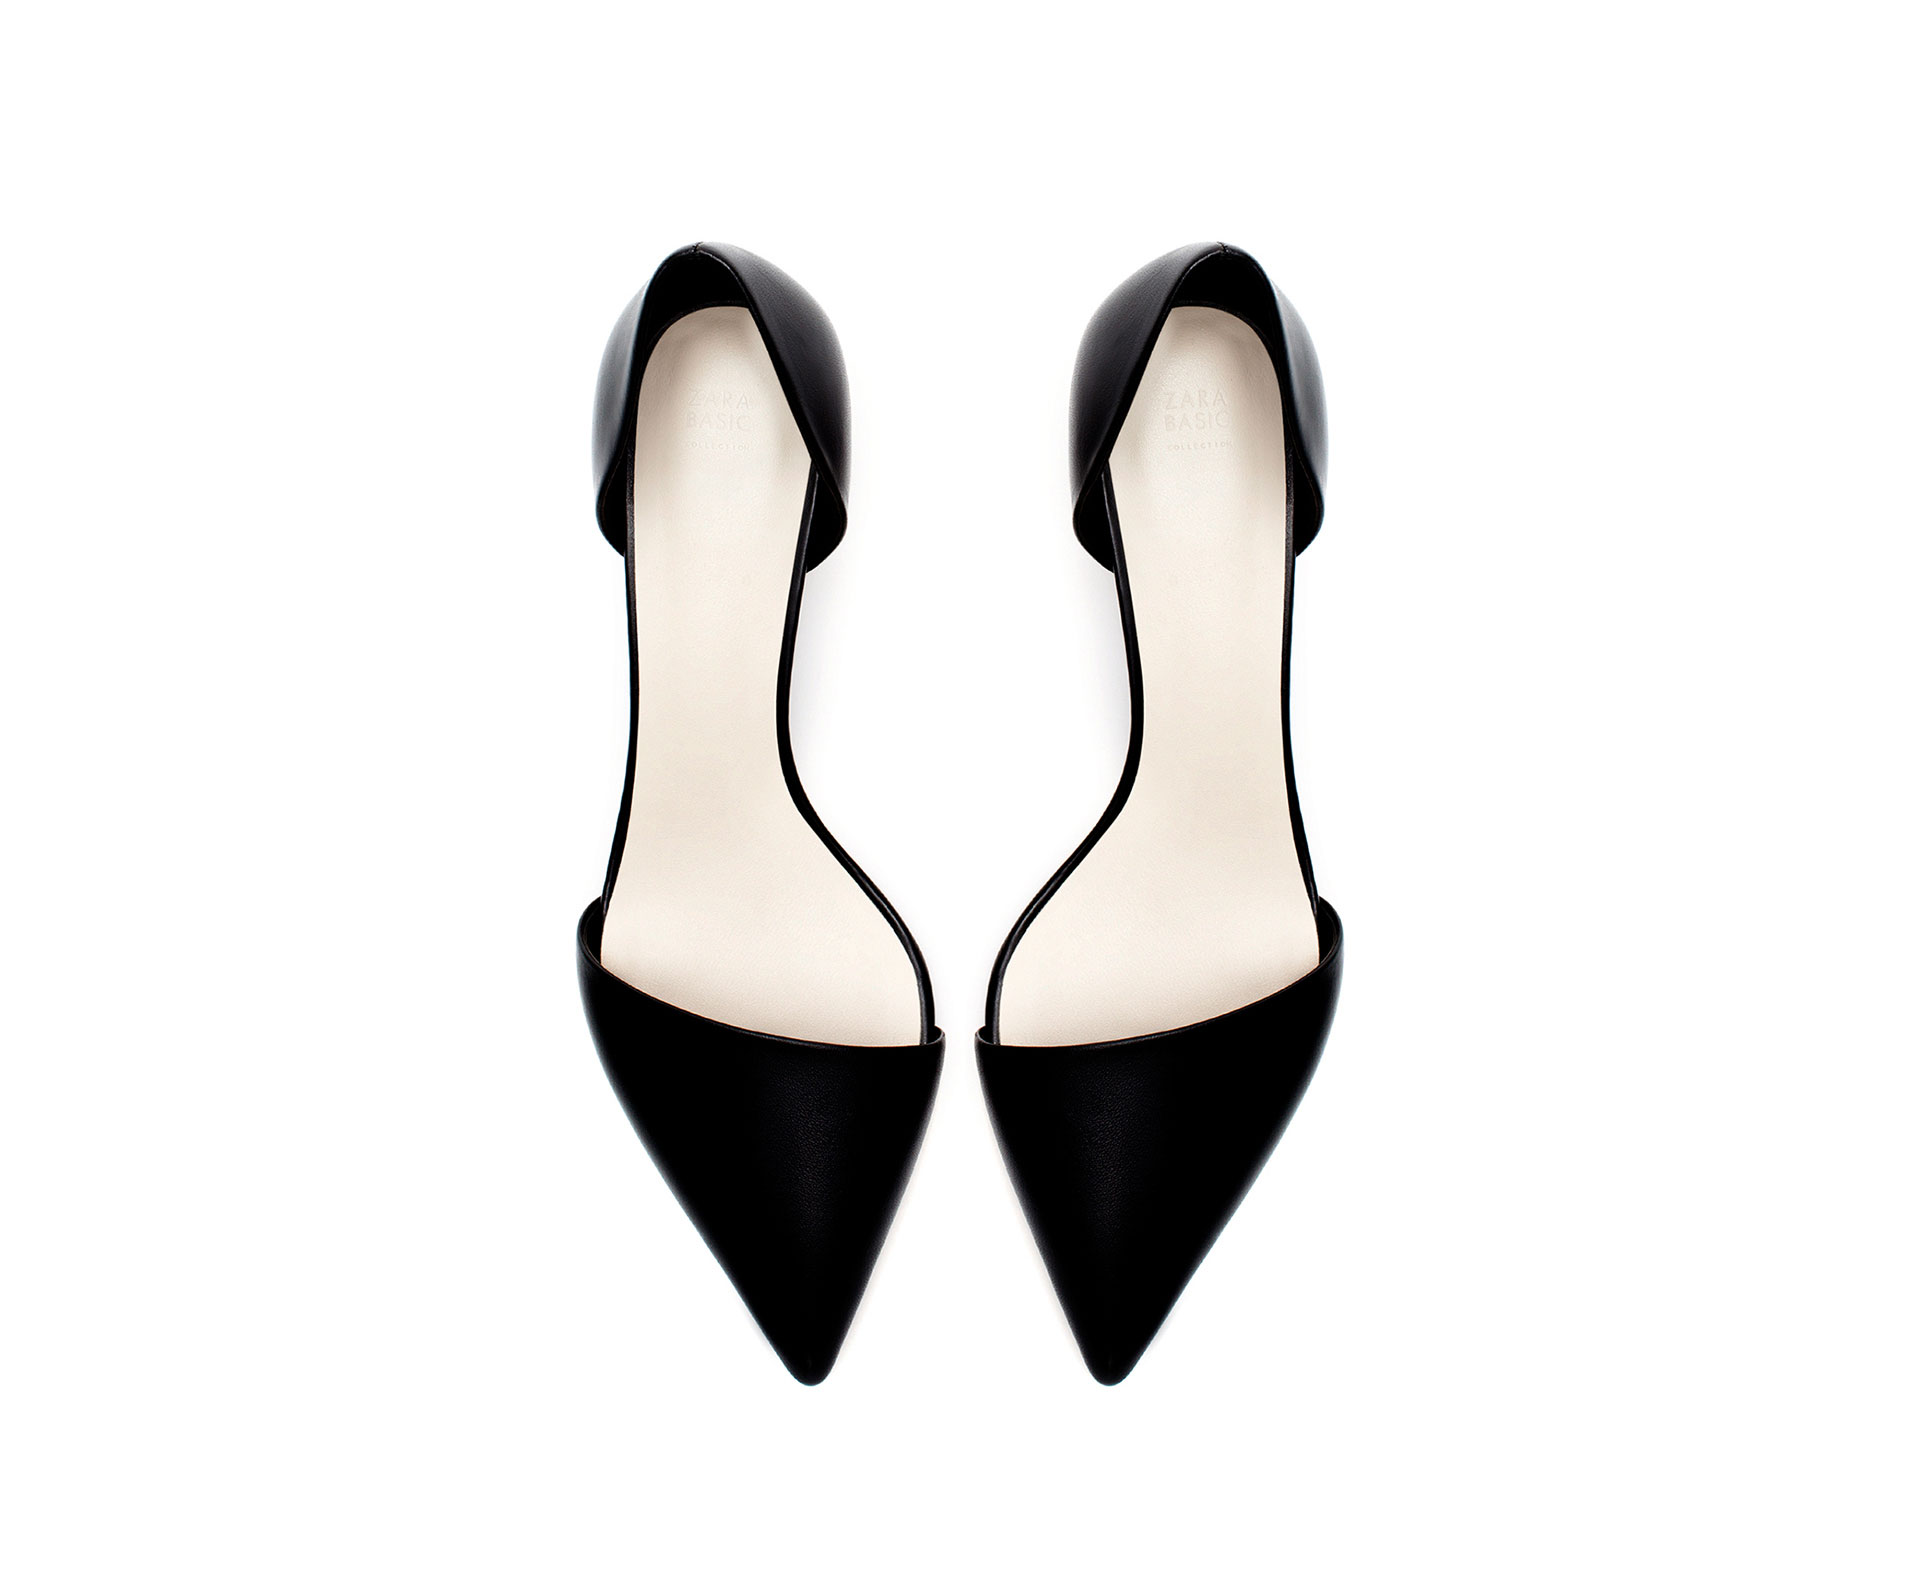 Zara Kitten Heel Pointed Shoes in Black | Lyst